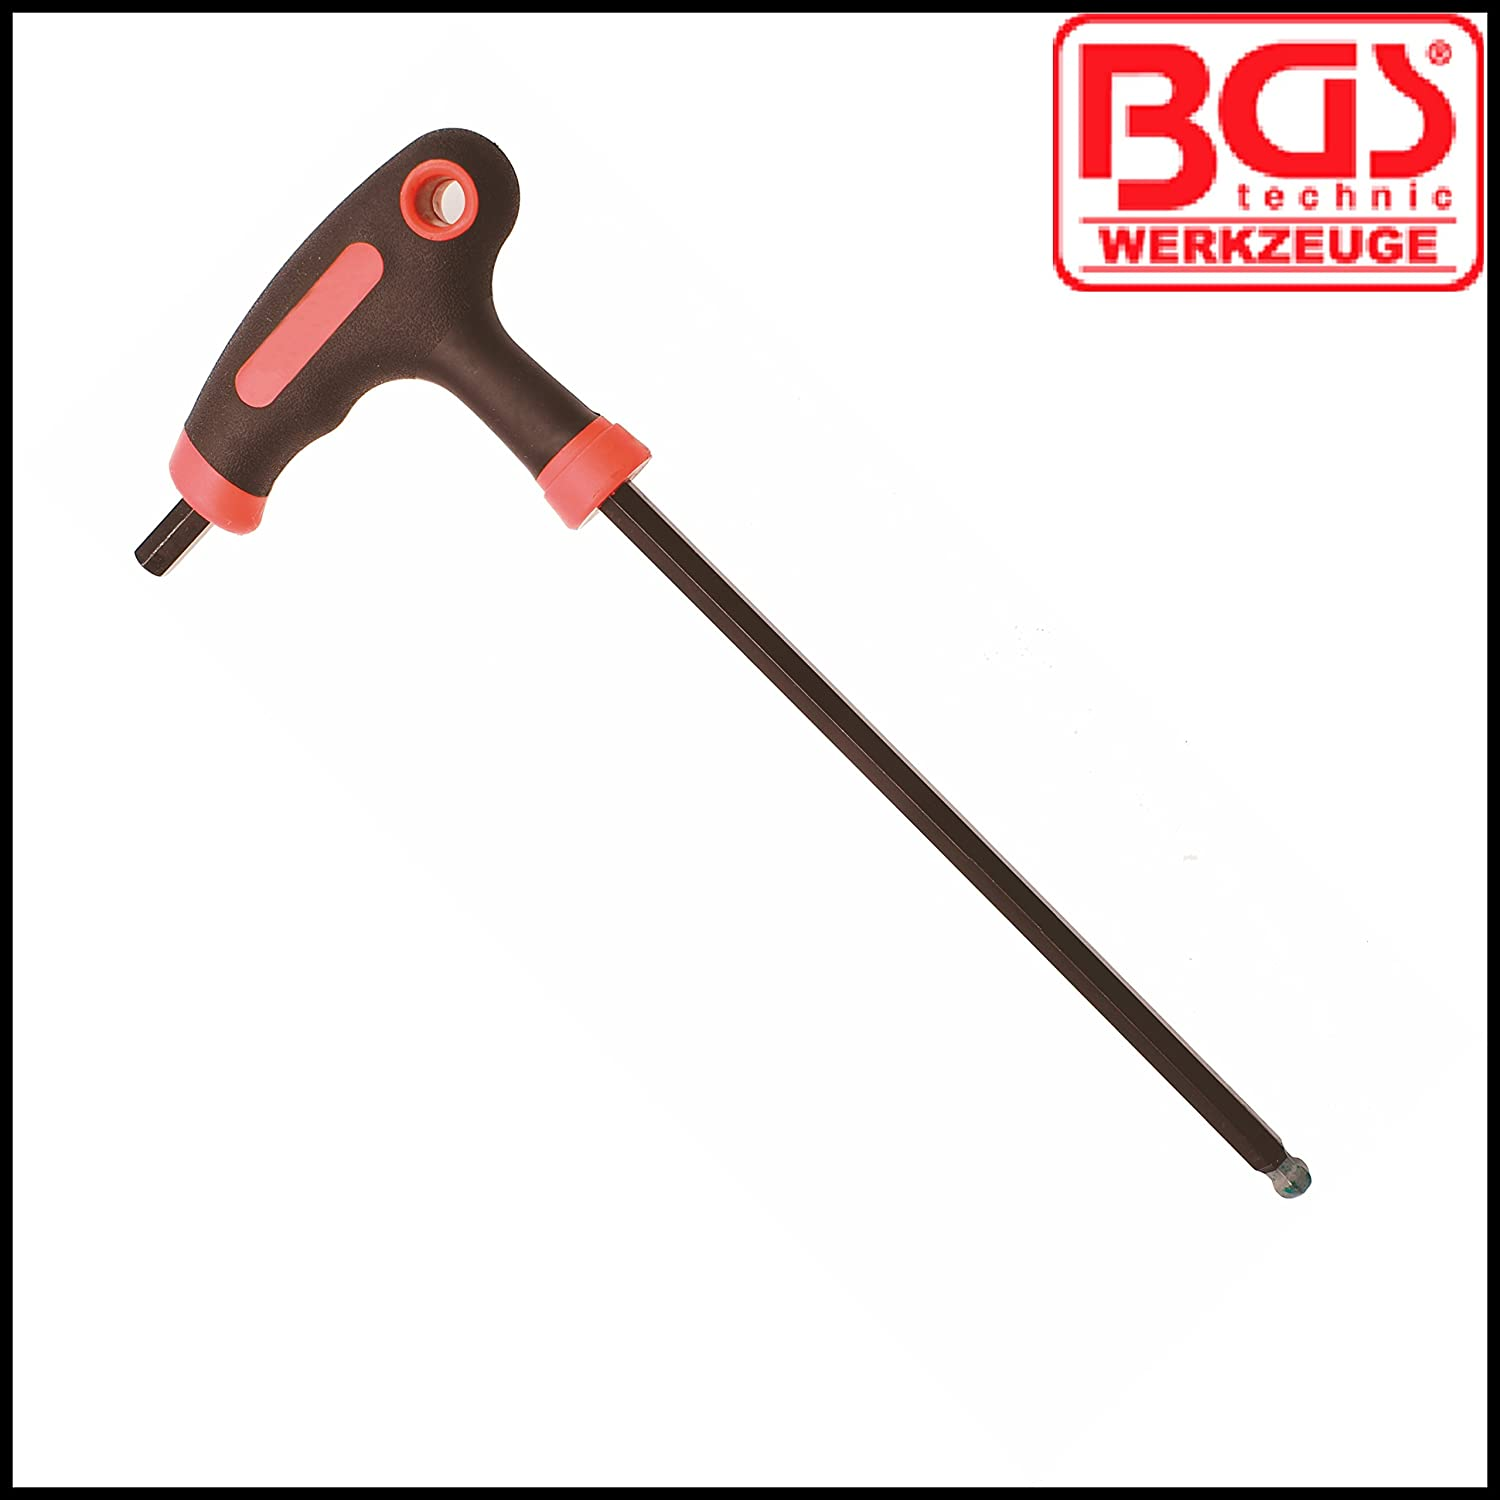 2 mm Allen Key BGS BGS-7882-2 Internal Hex T Handle 100 mm